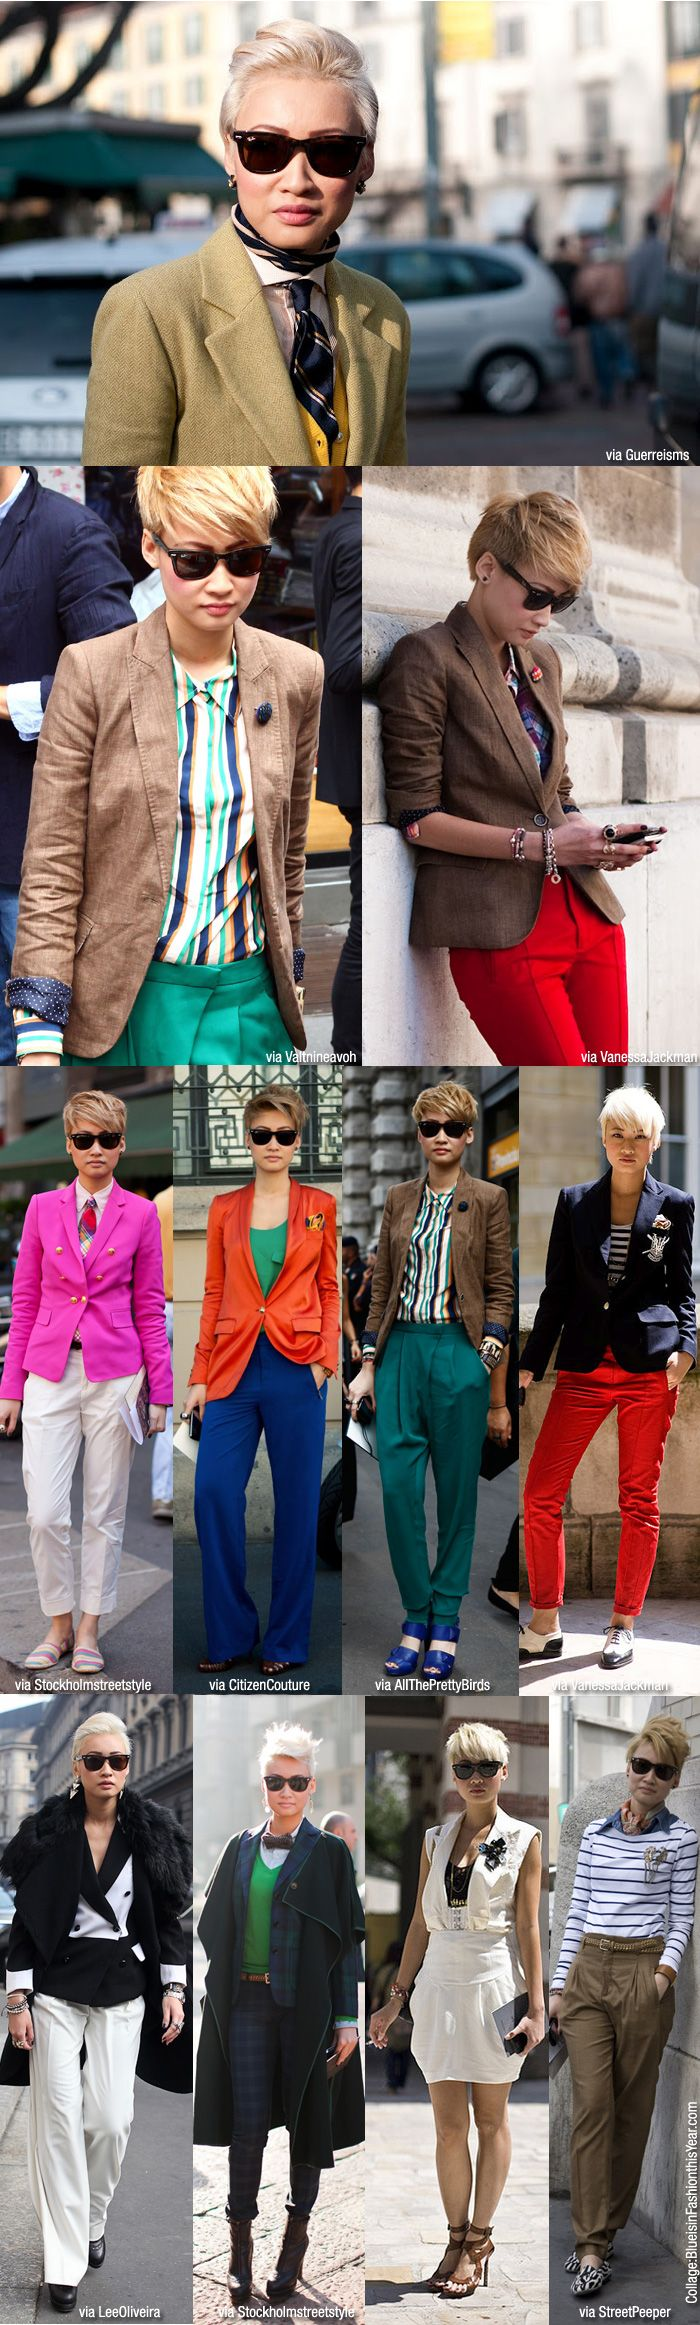 this flawless lady esther quek is the fashion director at menswear magazine the rake